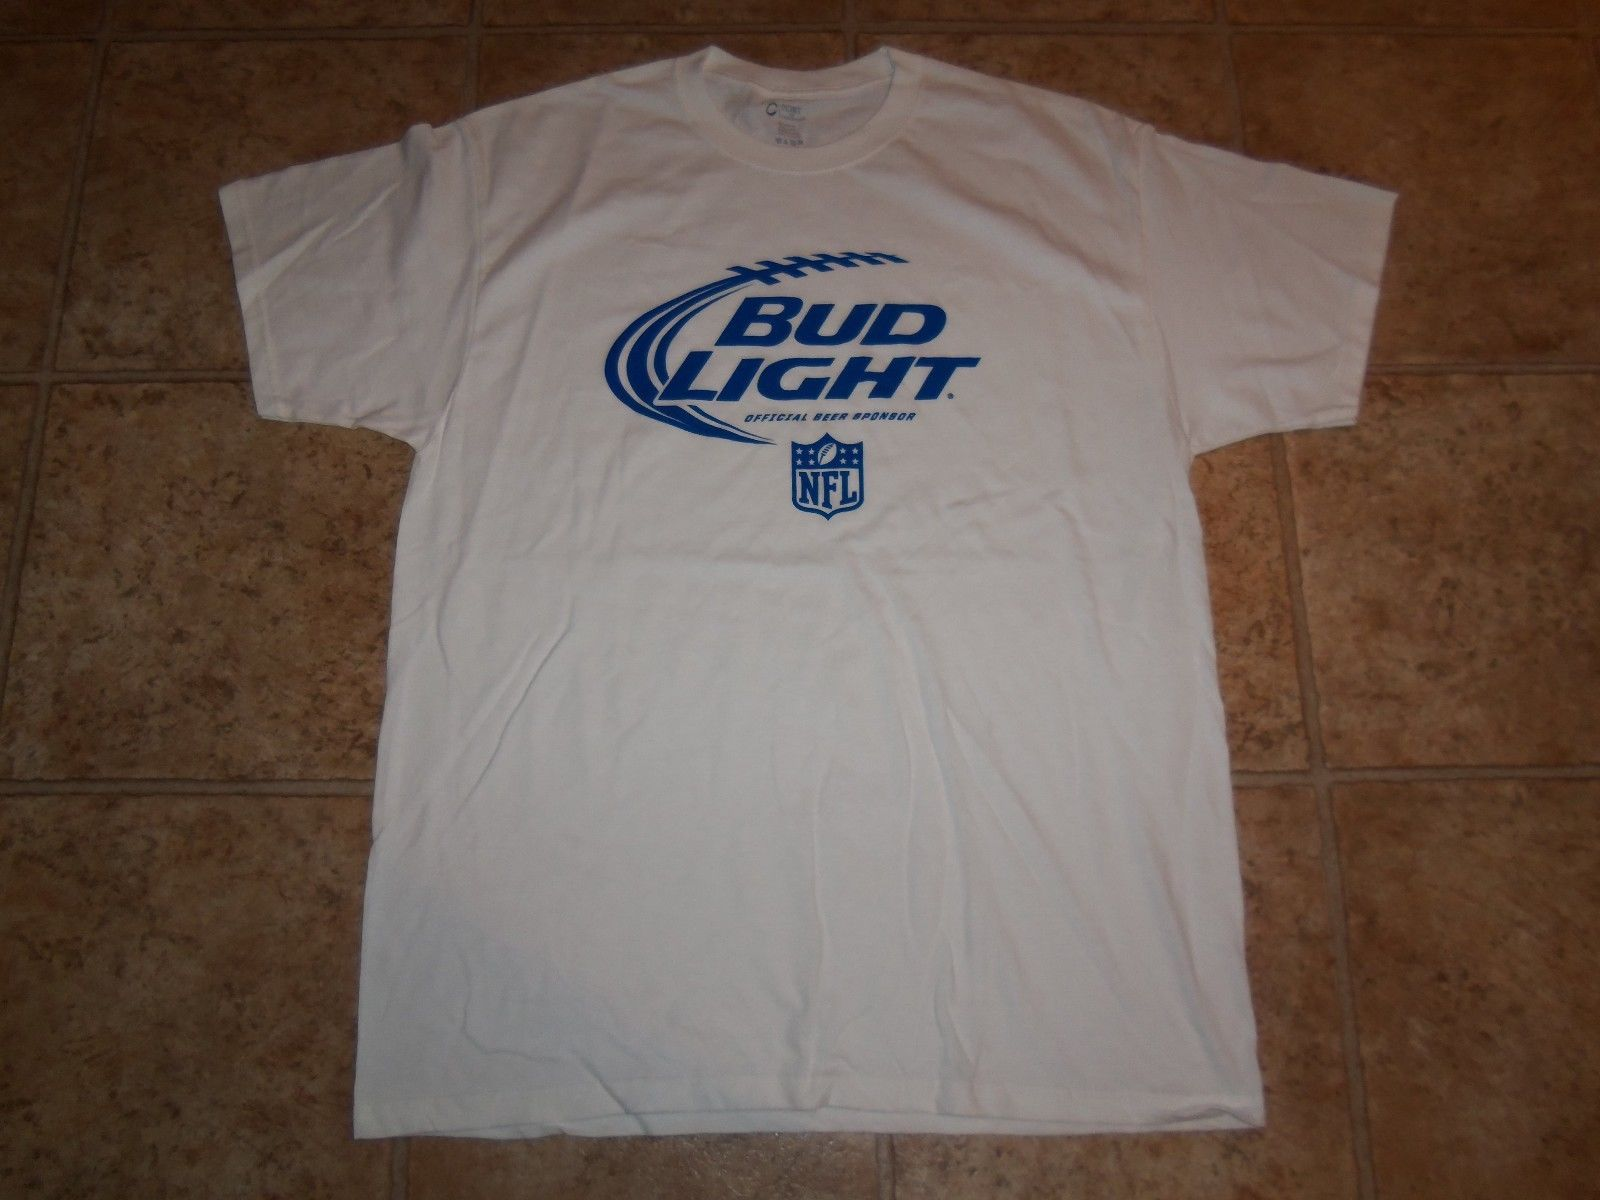 NFL Bud Light Official Beer Sponsor NFL Football White Graphic Print T Shirt XL